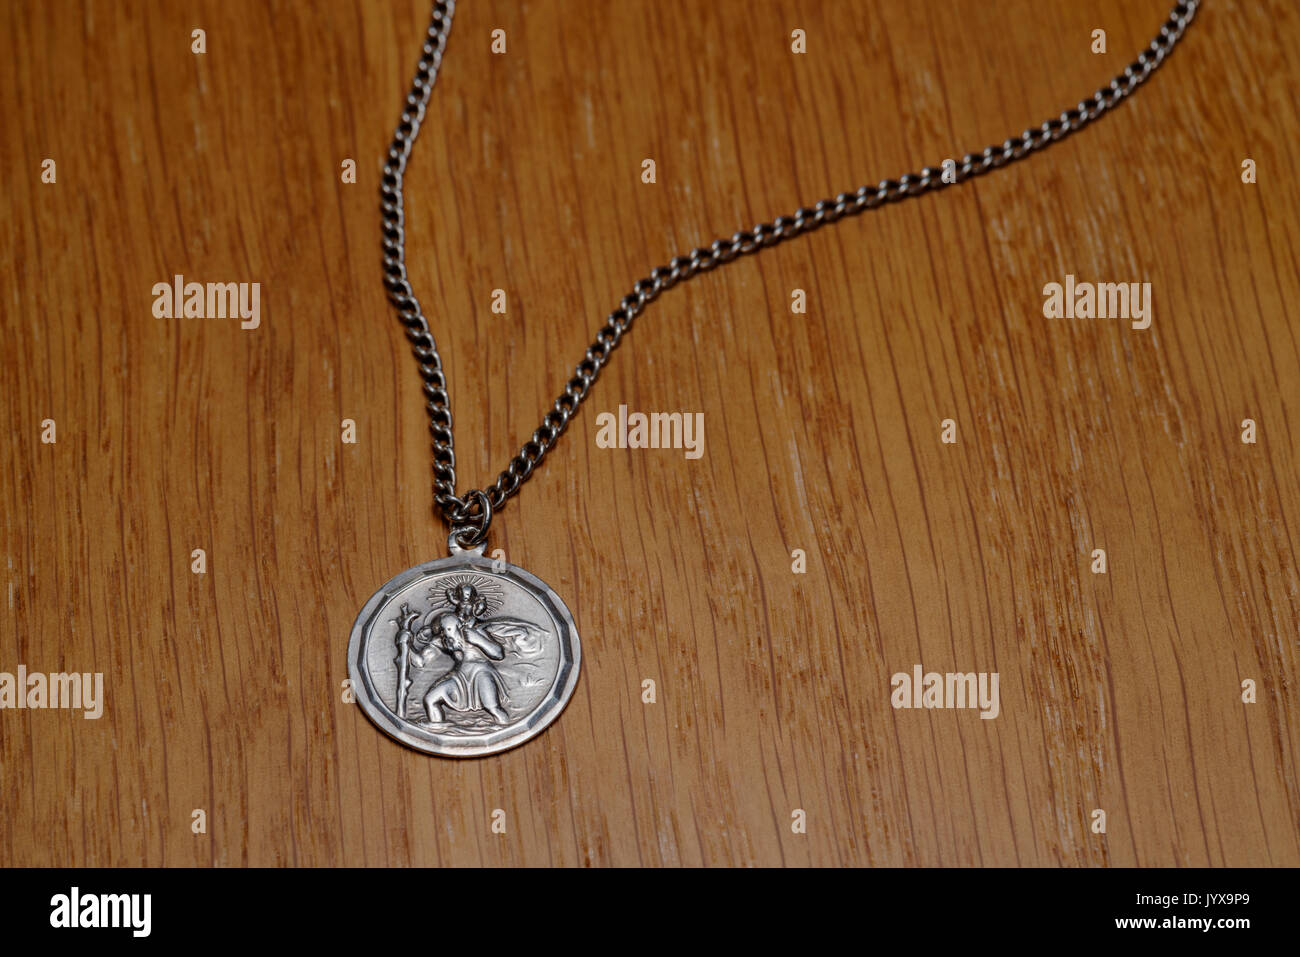 6fdc7ccfafa St Christopher Stock Photos & St Christopher Stock Images - Alamy